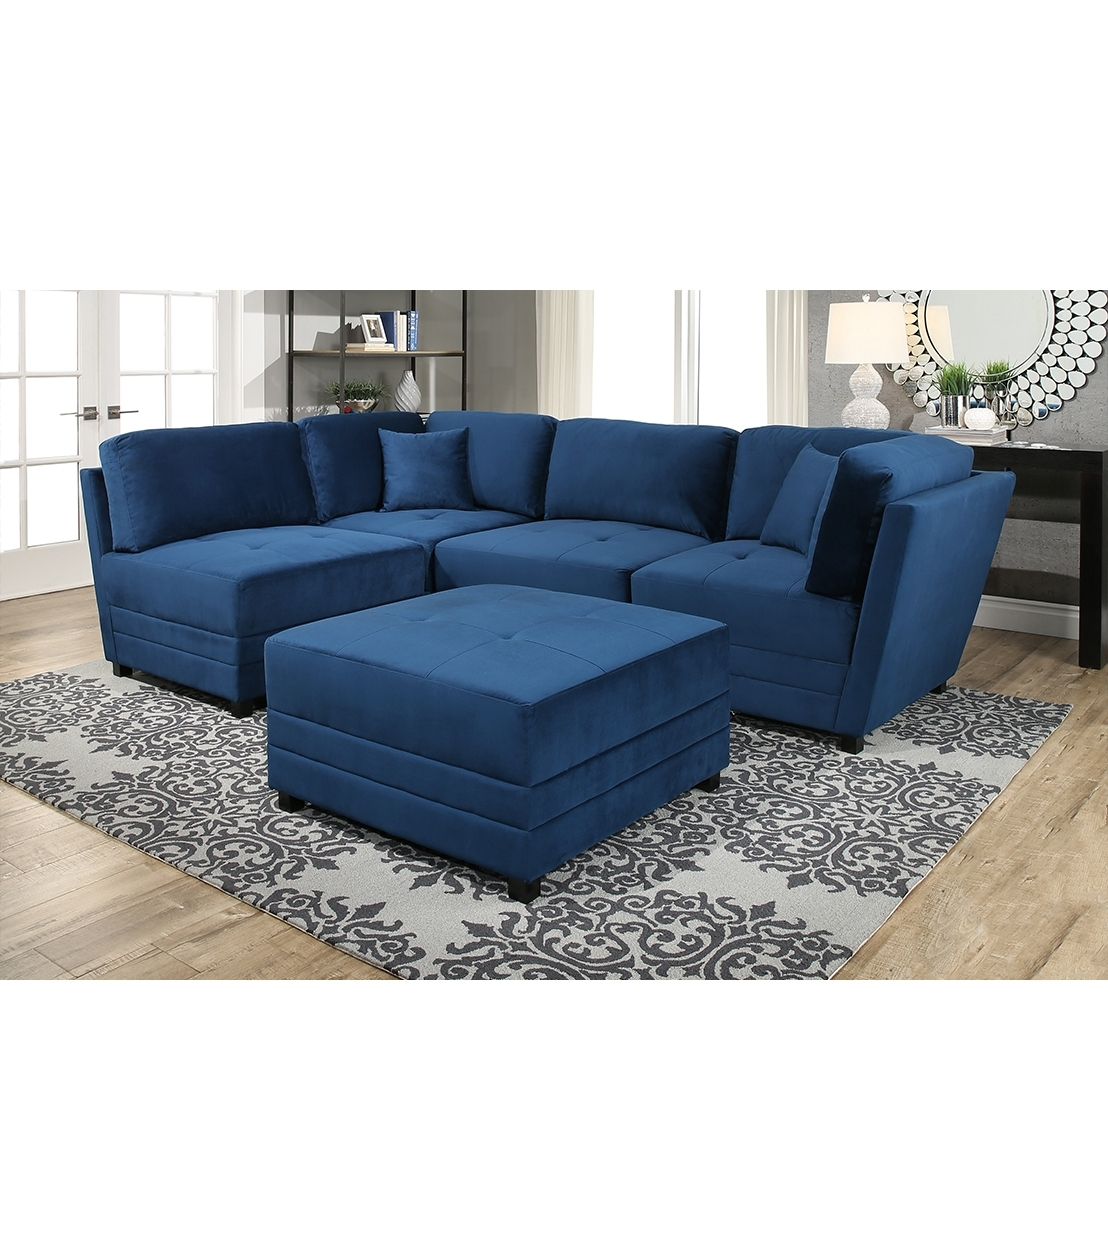 Fashionable Abbyson Sectional Sofas Intended For New Arrivals : Leyla Sectional, Blue (View 13 of 15)